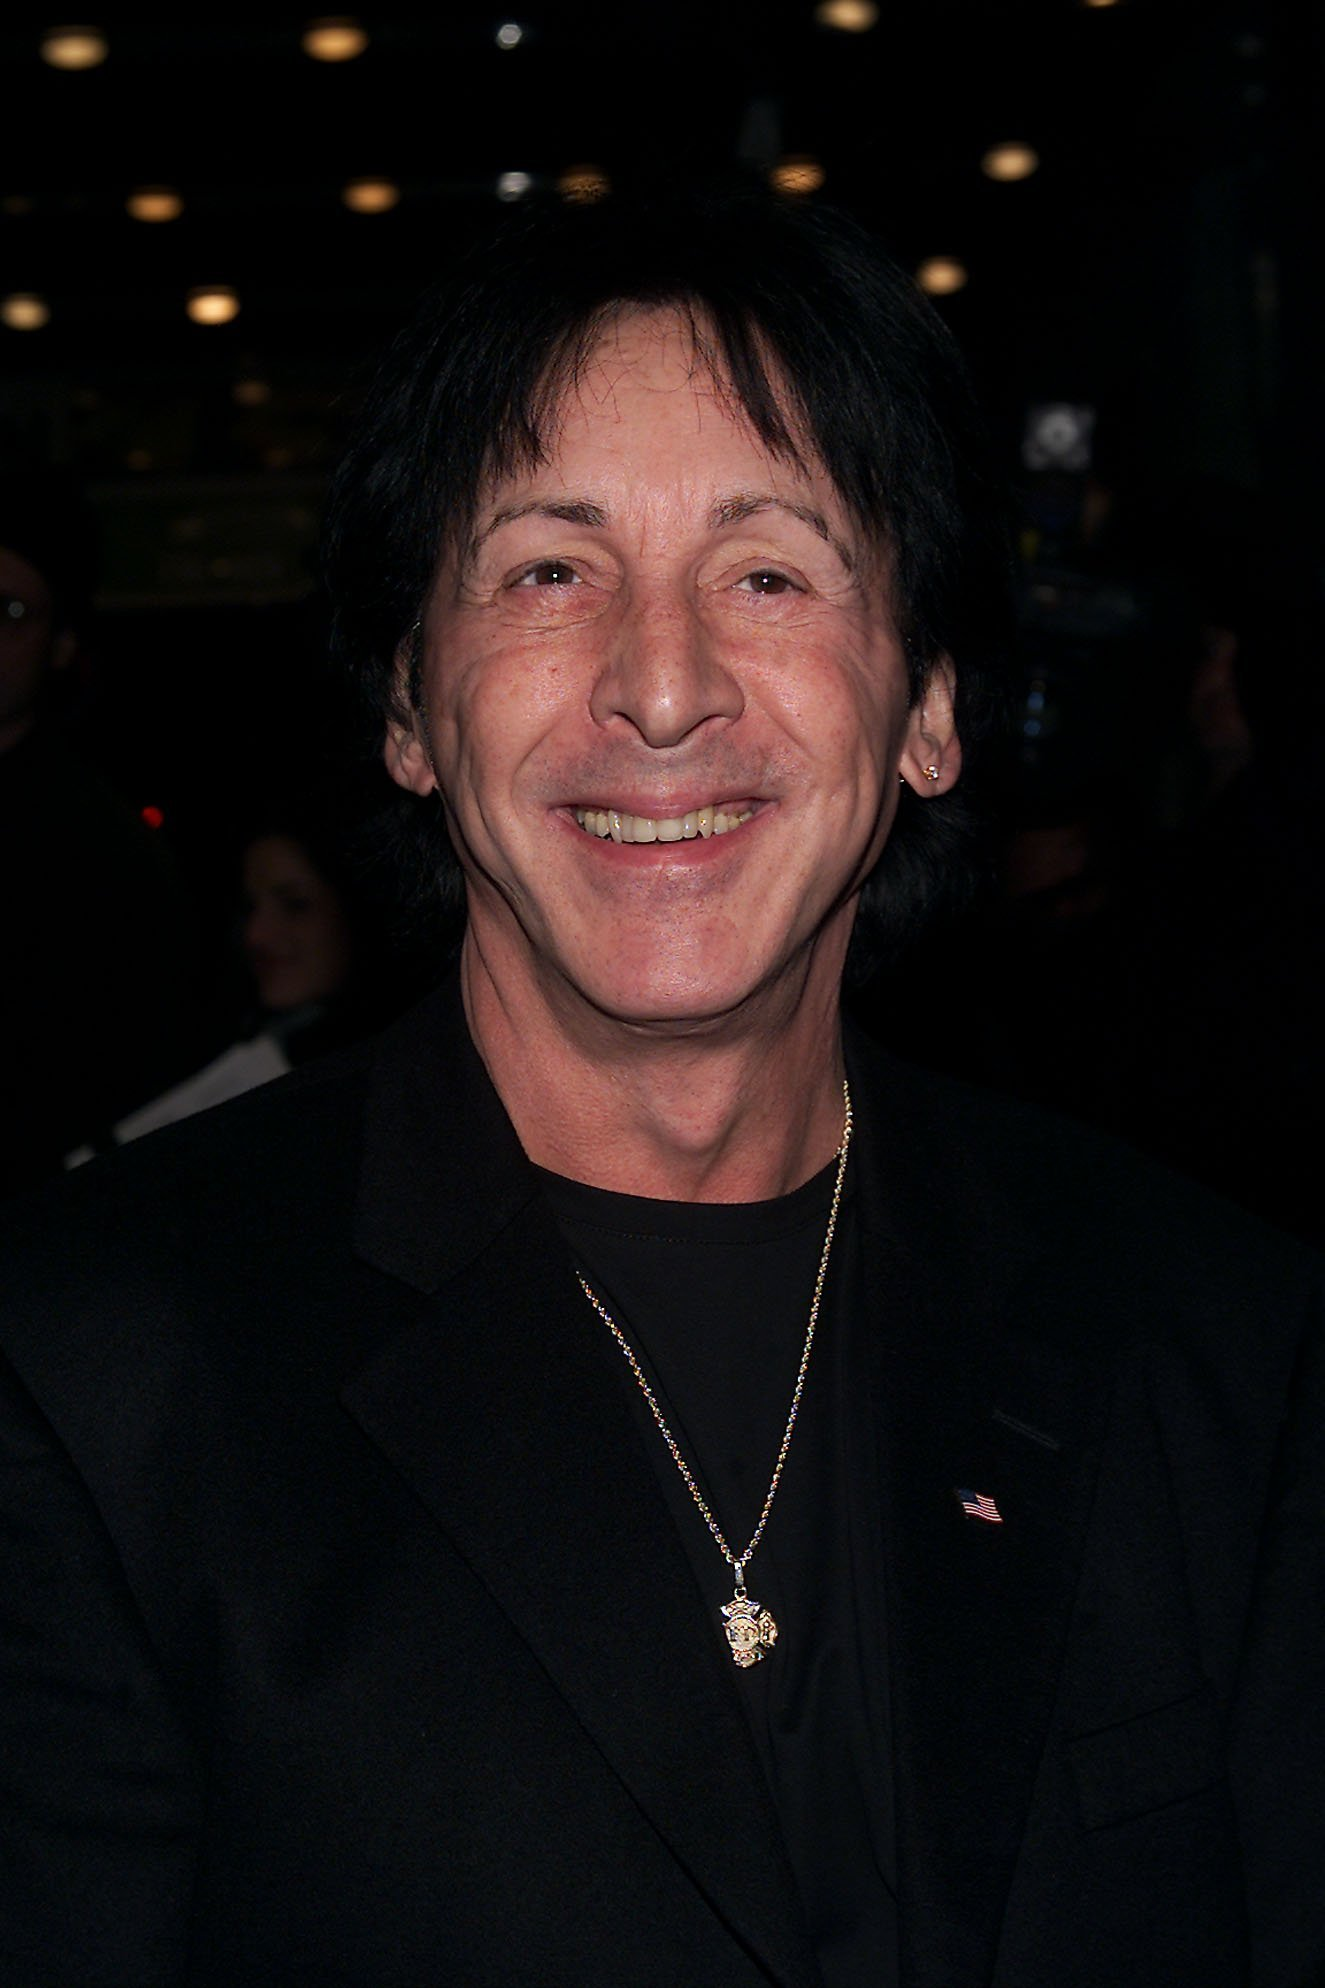 Peter Criss of Kiss in New York City on May 11, 2001 | Source: Getty Images